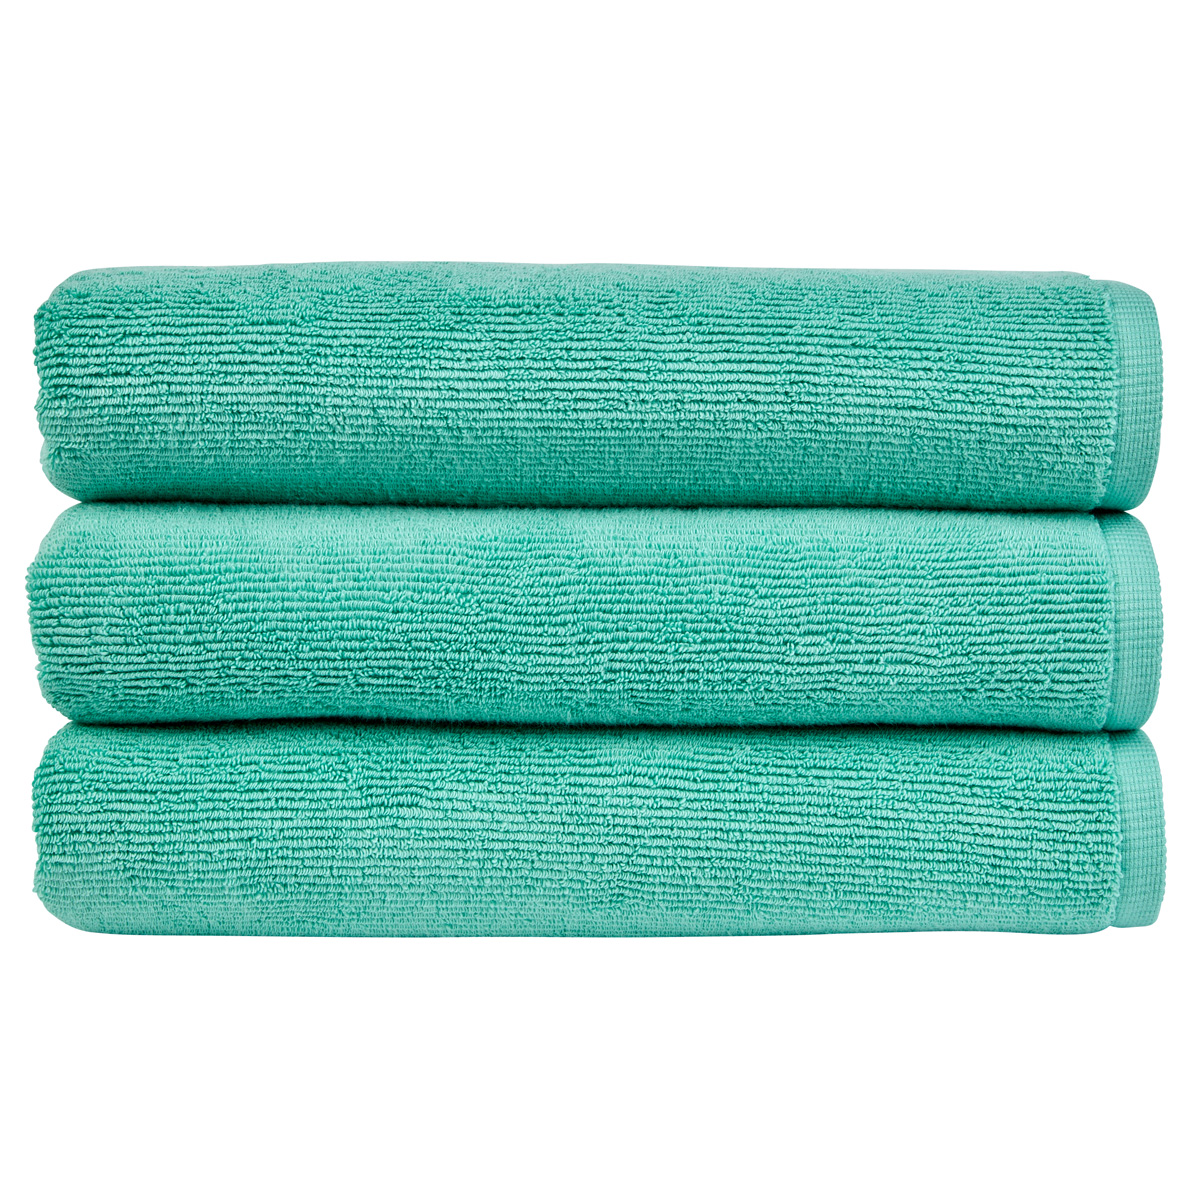 An image of Luxury Brighton Face Cloth in Mint (Green) by Christy